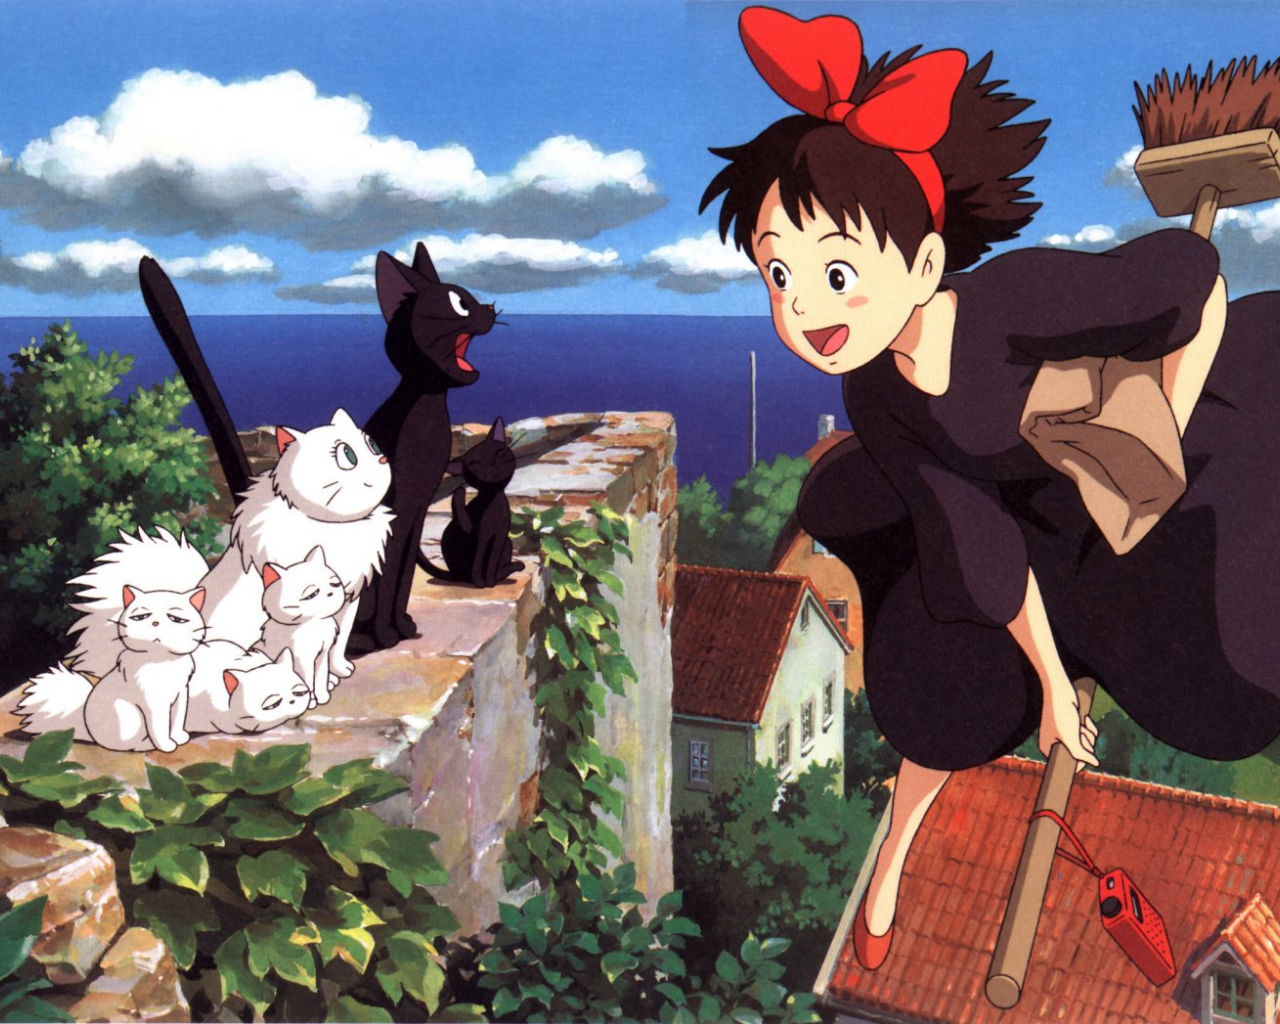 Free Download 31 Kikis Delivery Service Hd Wallpapers Background